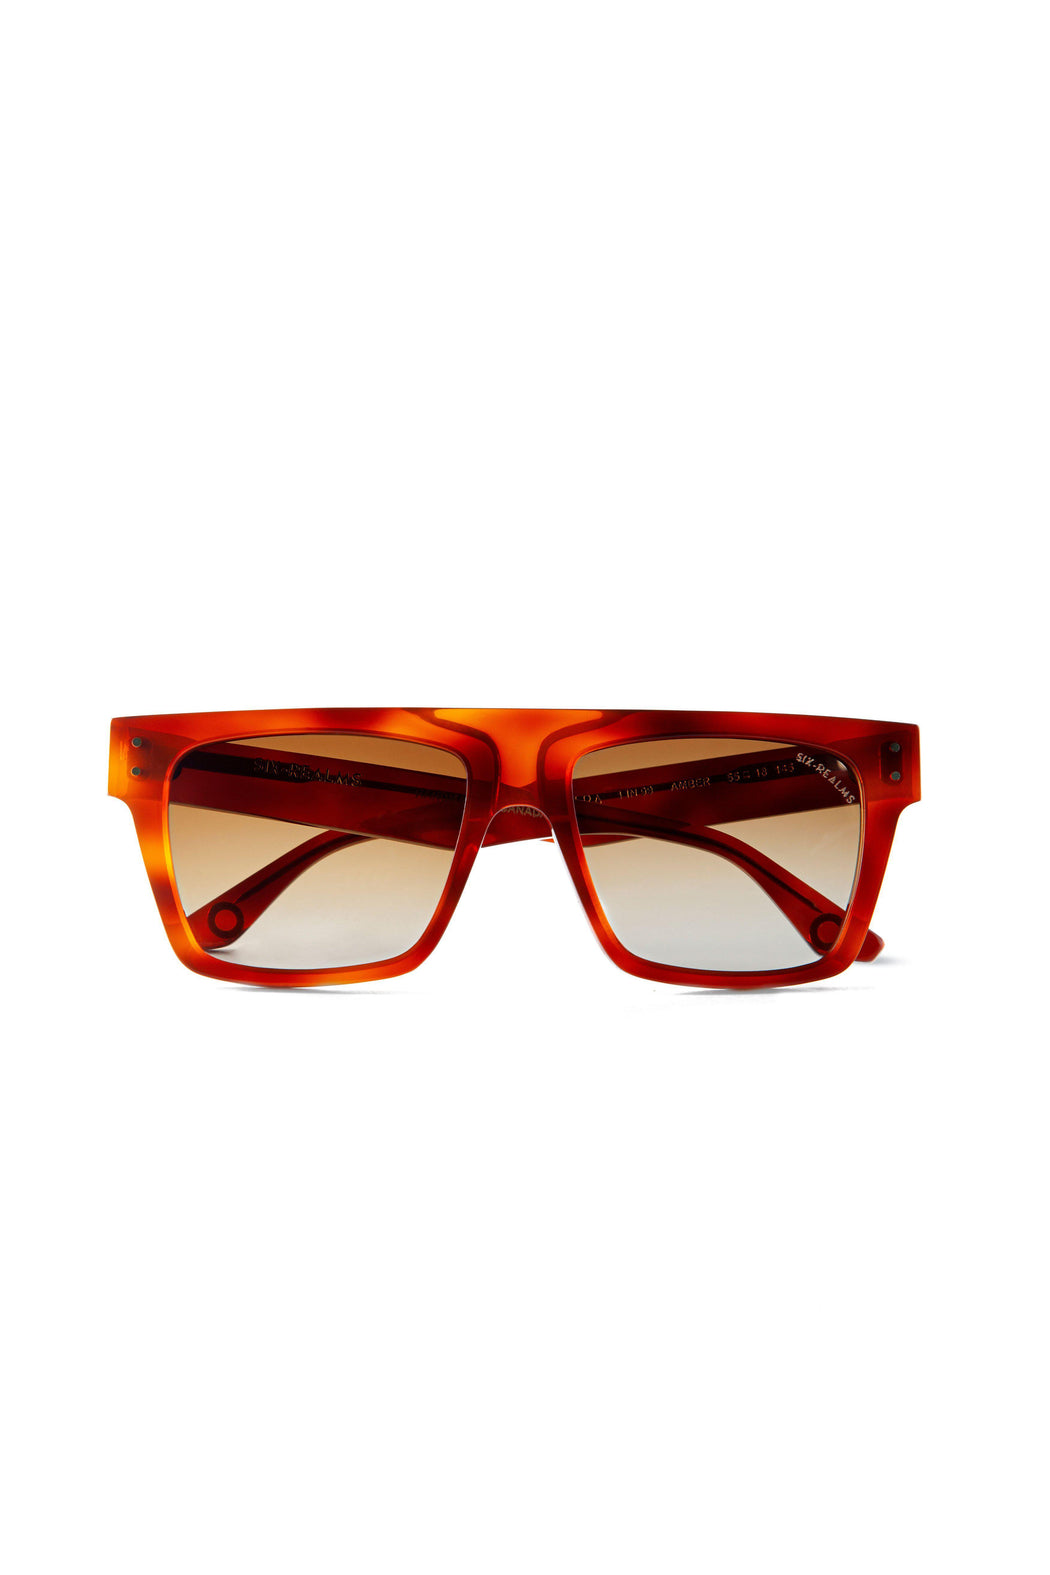 KALPA - Amber-sunglasses-SIX-REALMS